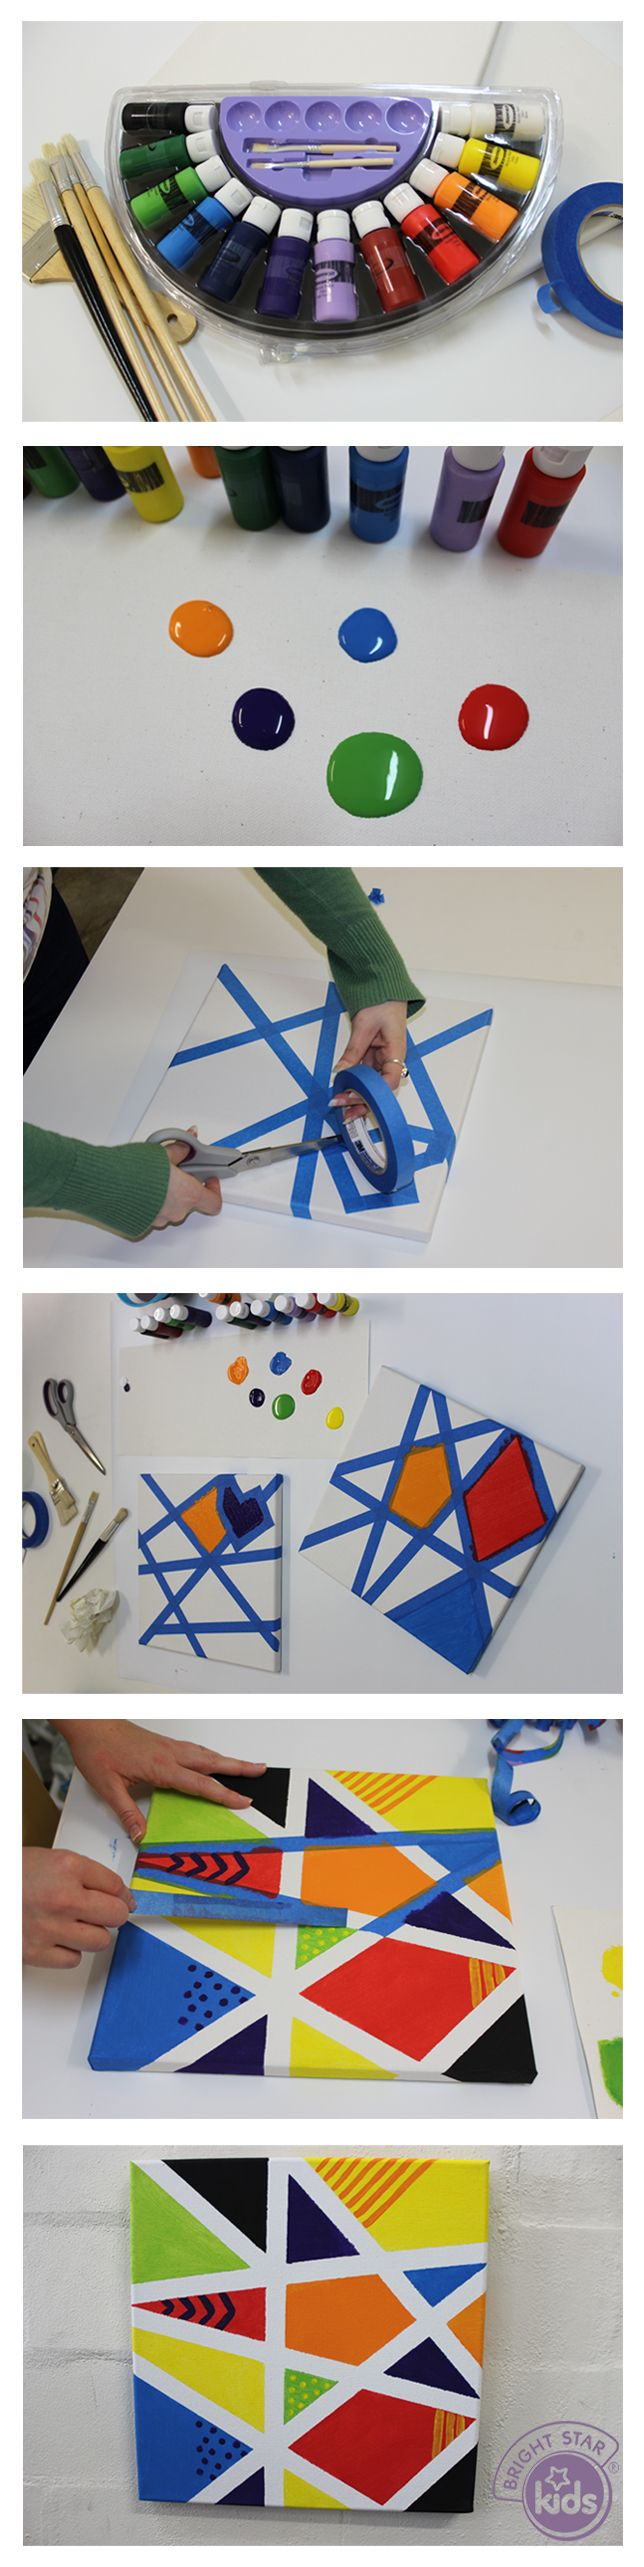 Cool and creative art project for kids